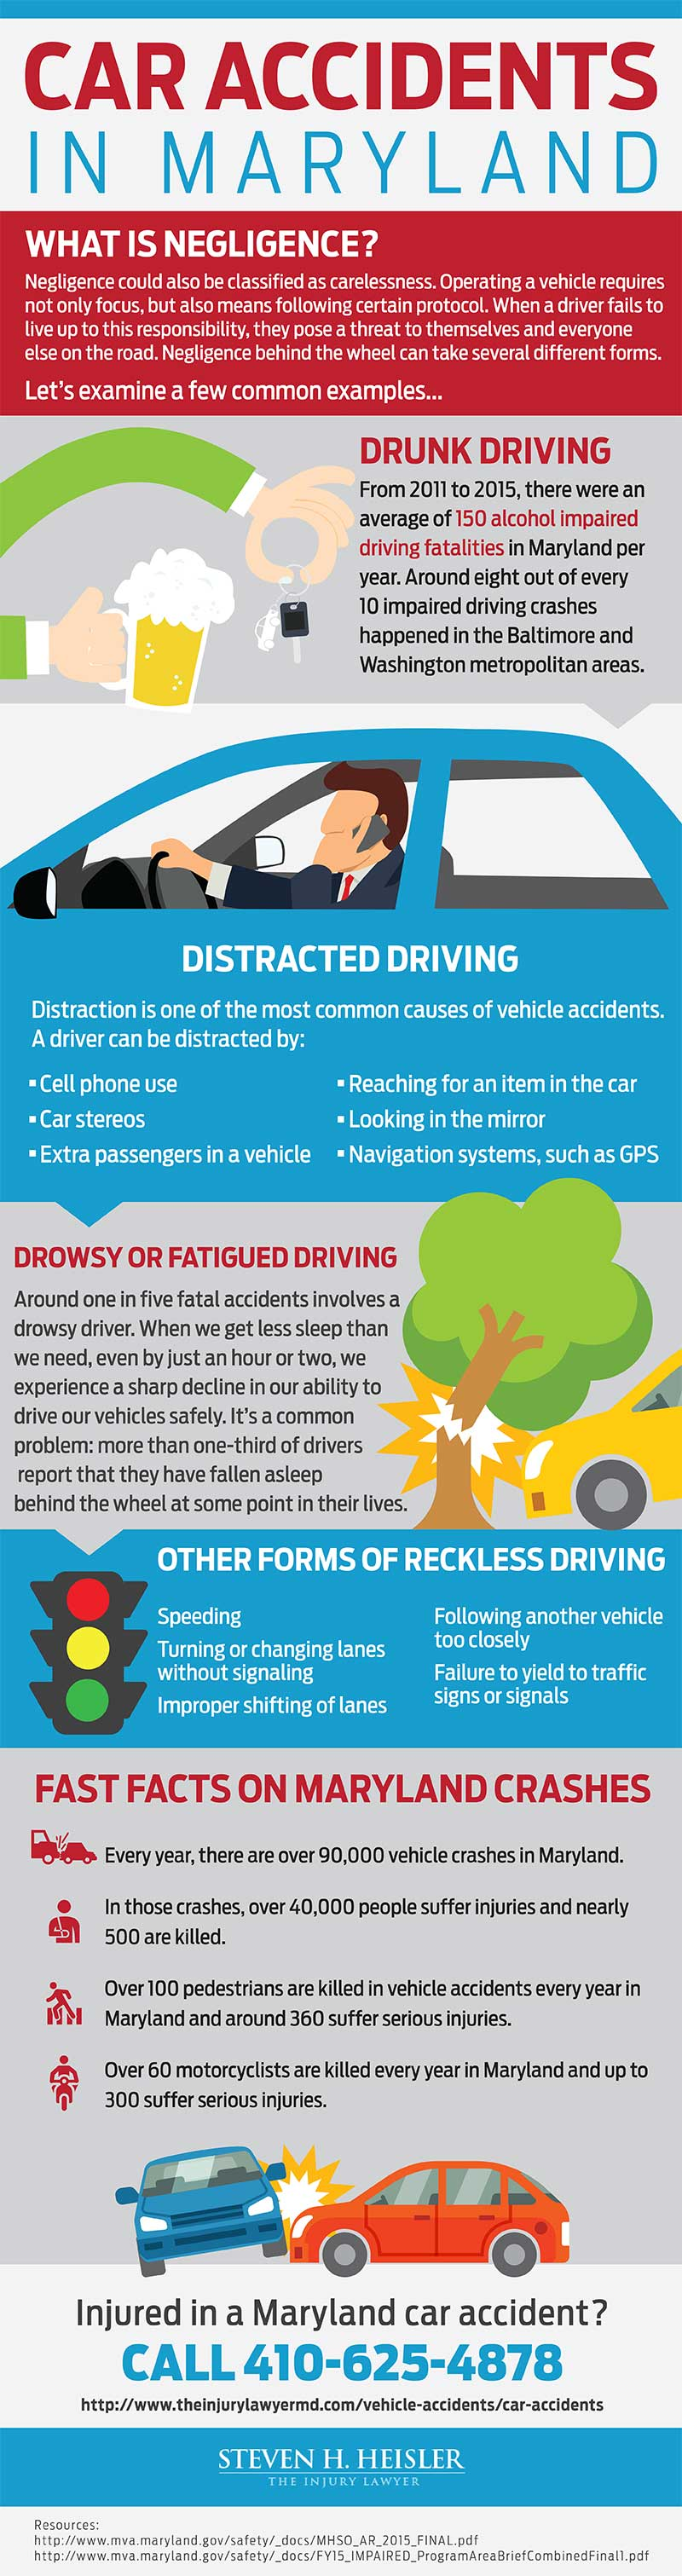 Car Accidents in Maryland infographic